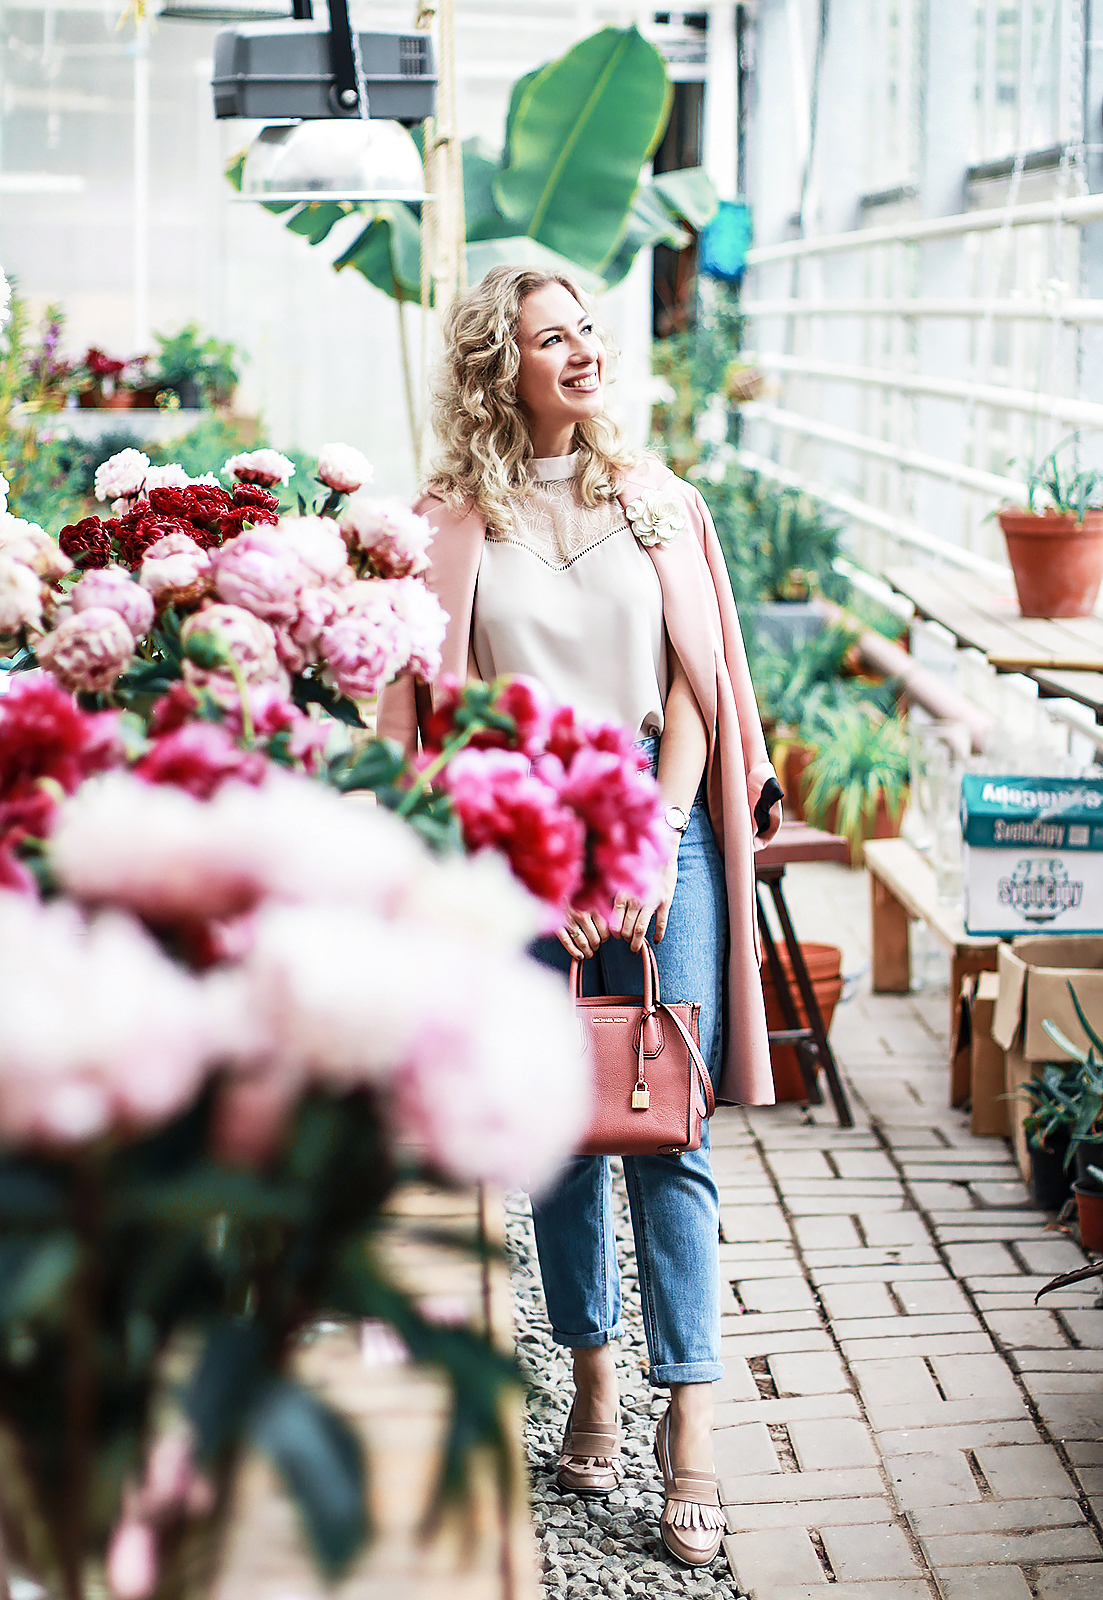 peony_garden_ritalifestyle_pink_zara_coat_mom_jeans_flowers_curly_ruffles_trend_2017